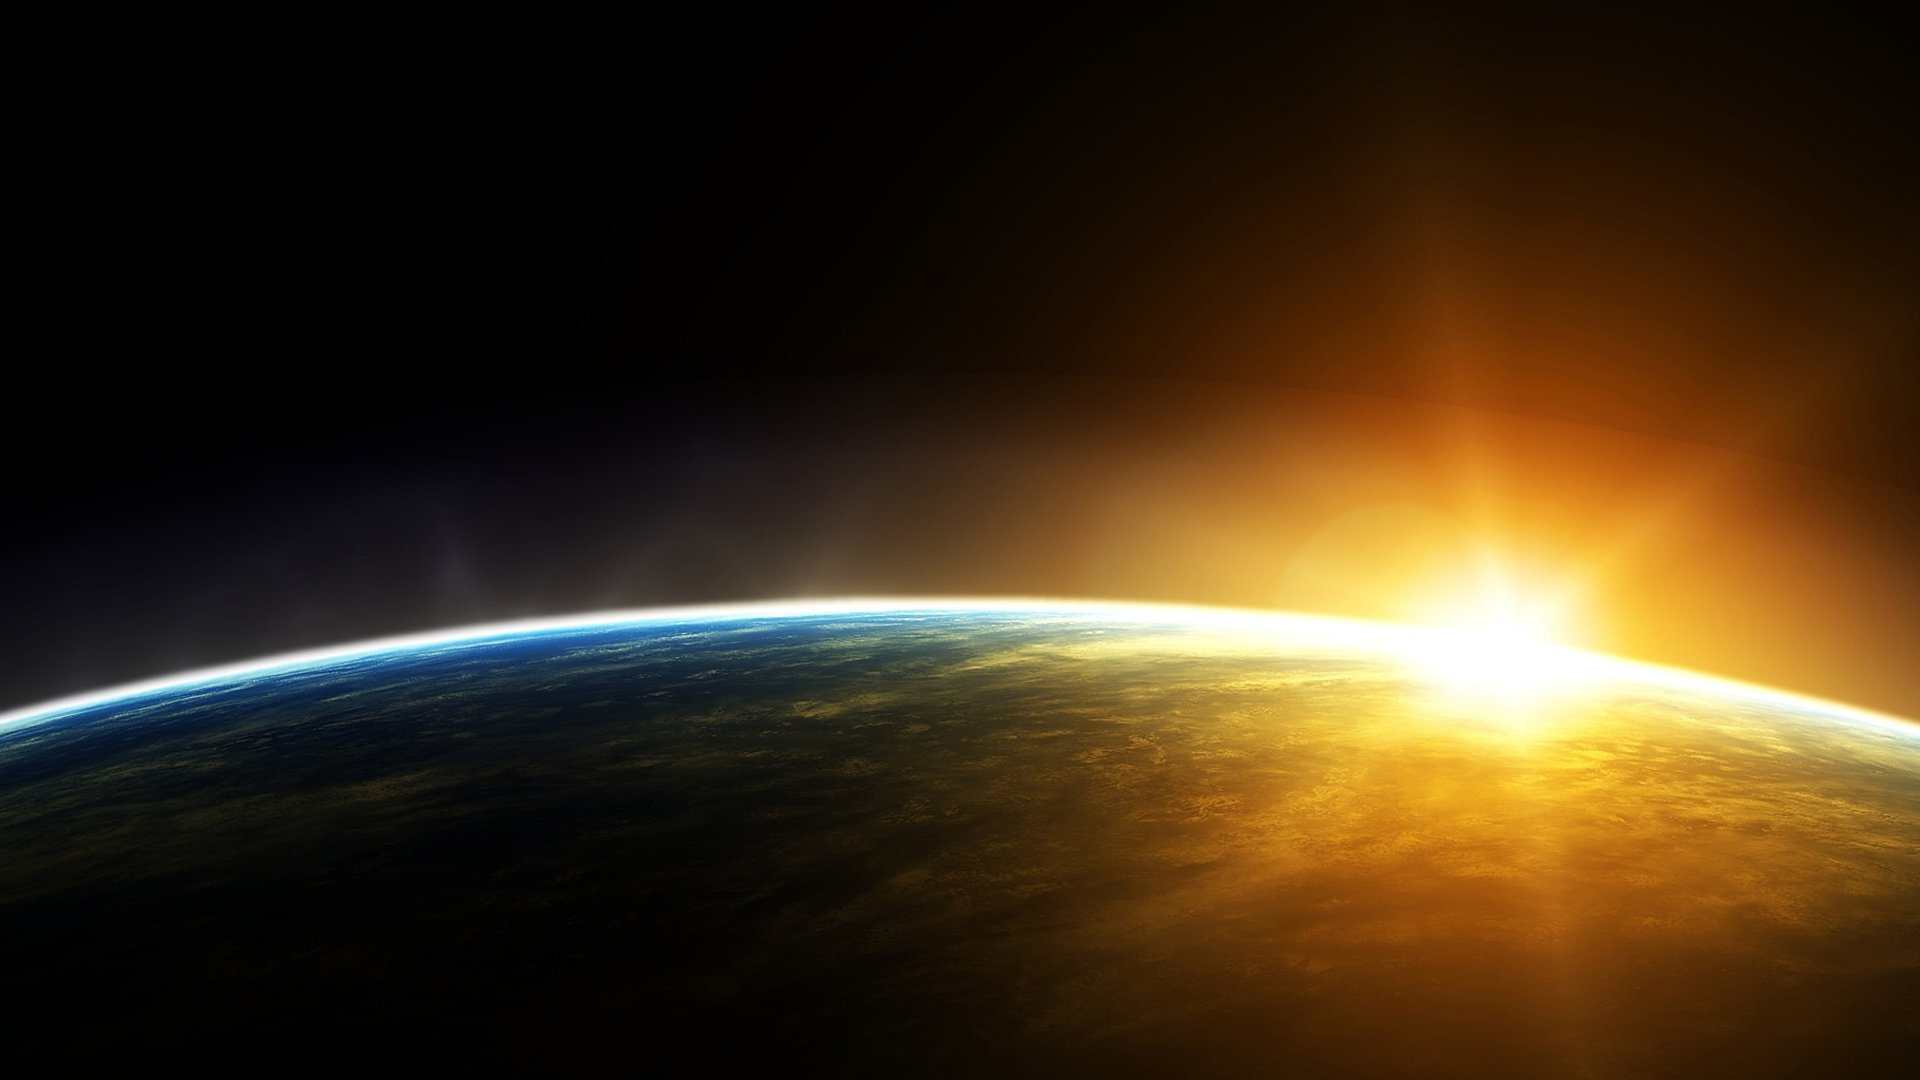 Sunrise Space Wallpaper Hd Free Desktop 8 HD Wallpapers